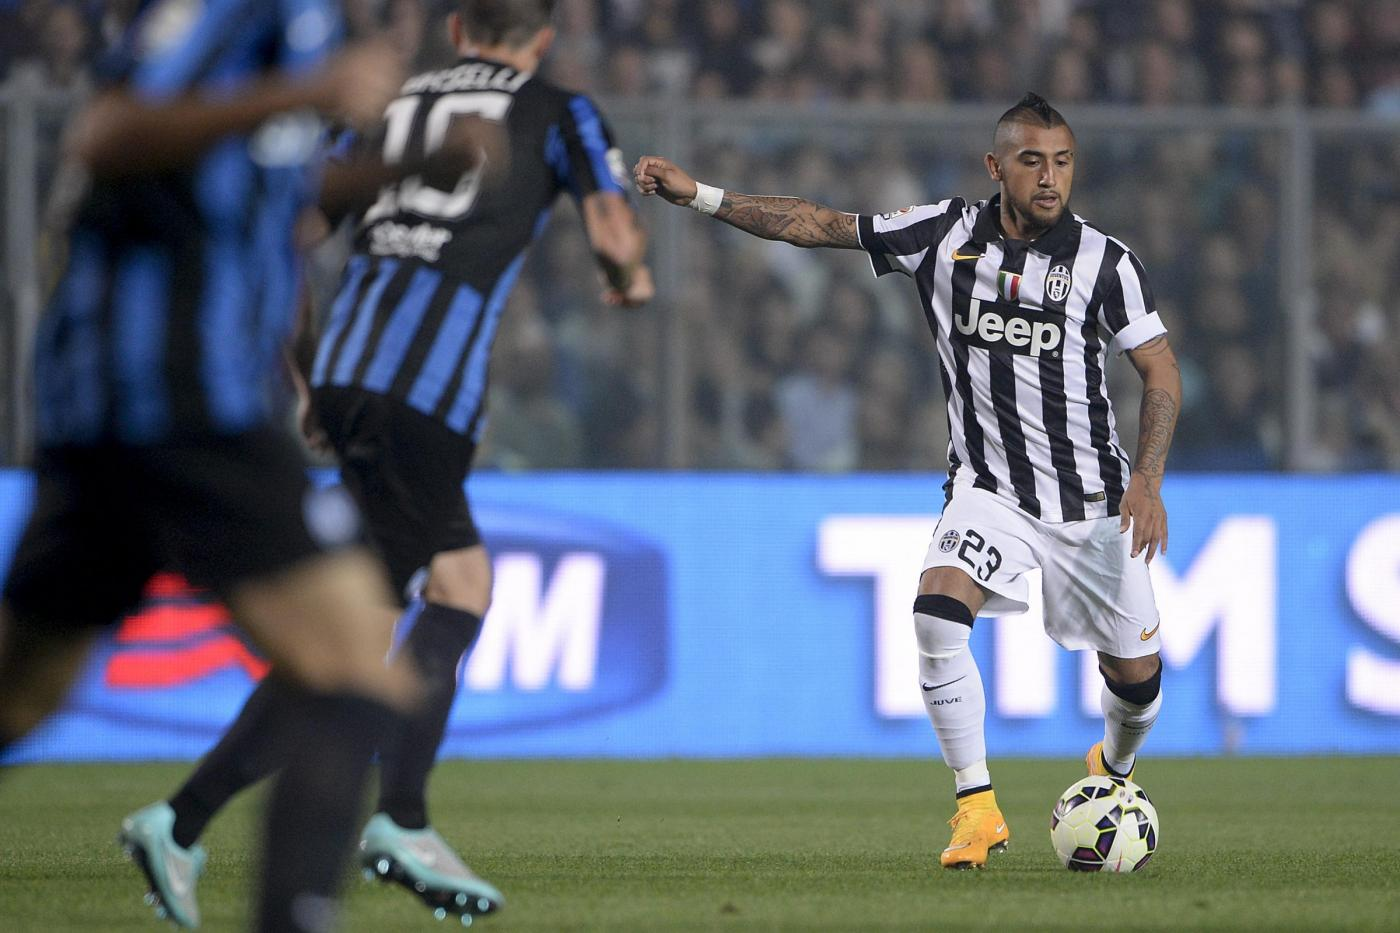 juventus atalanta - photo #17